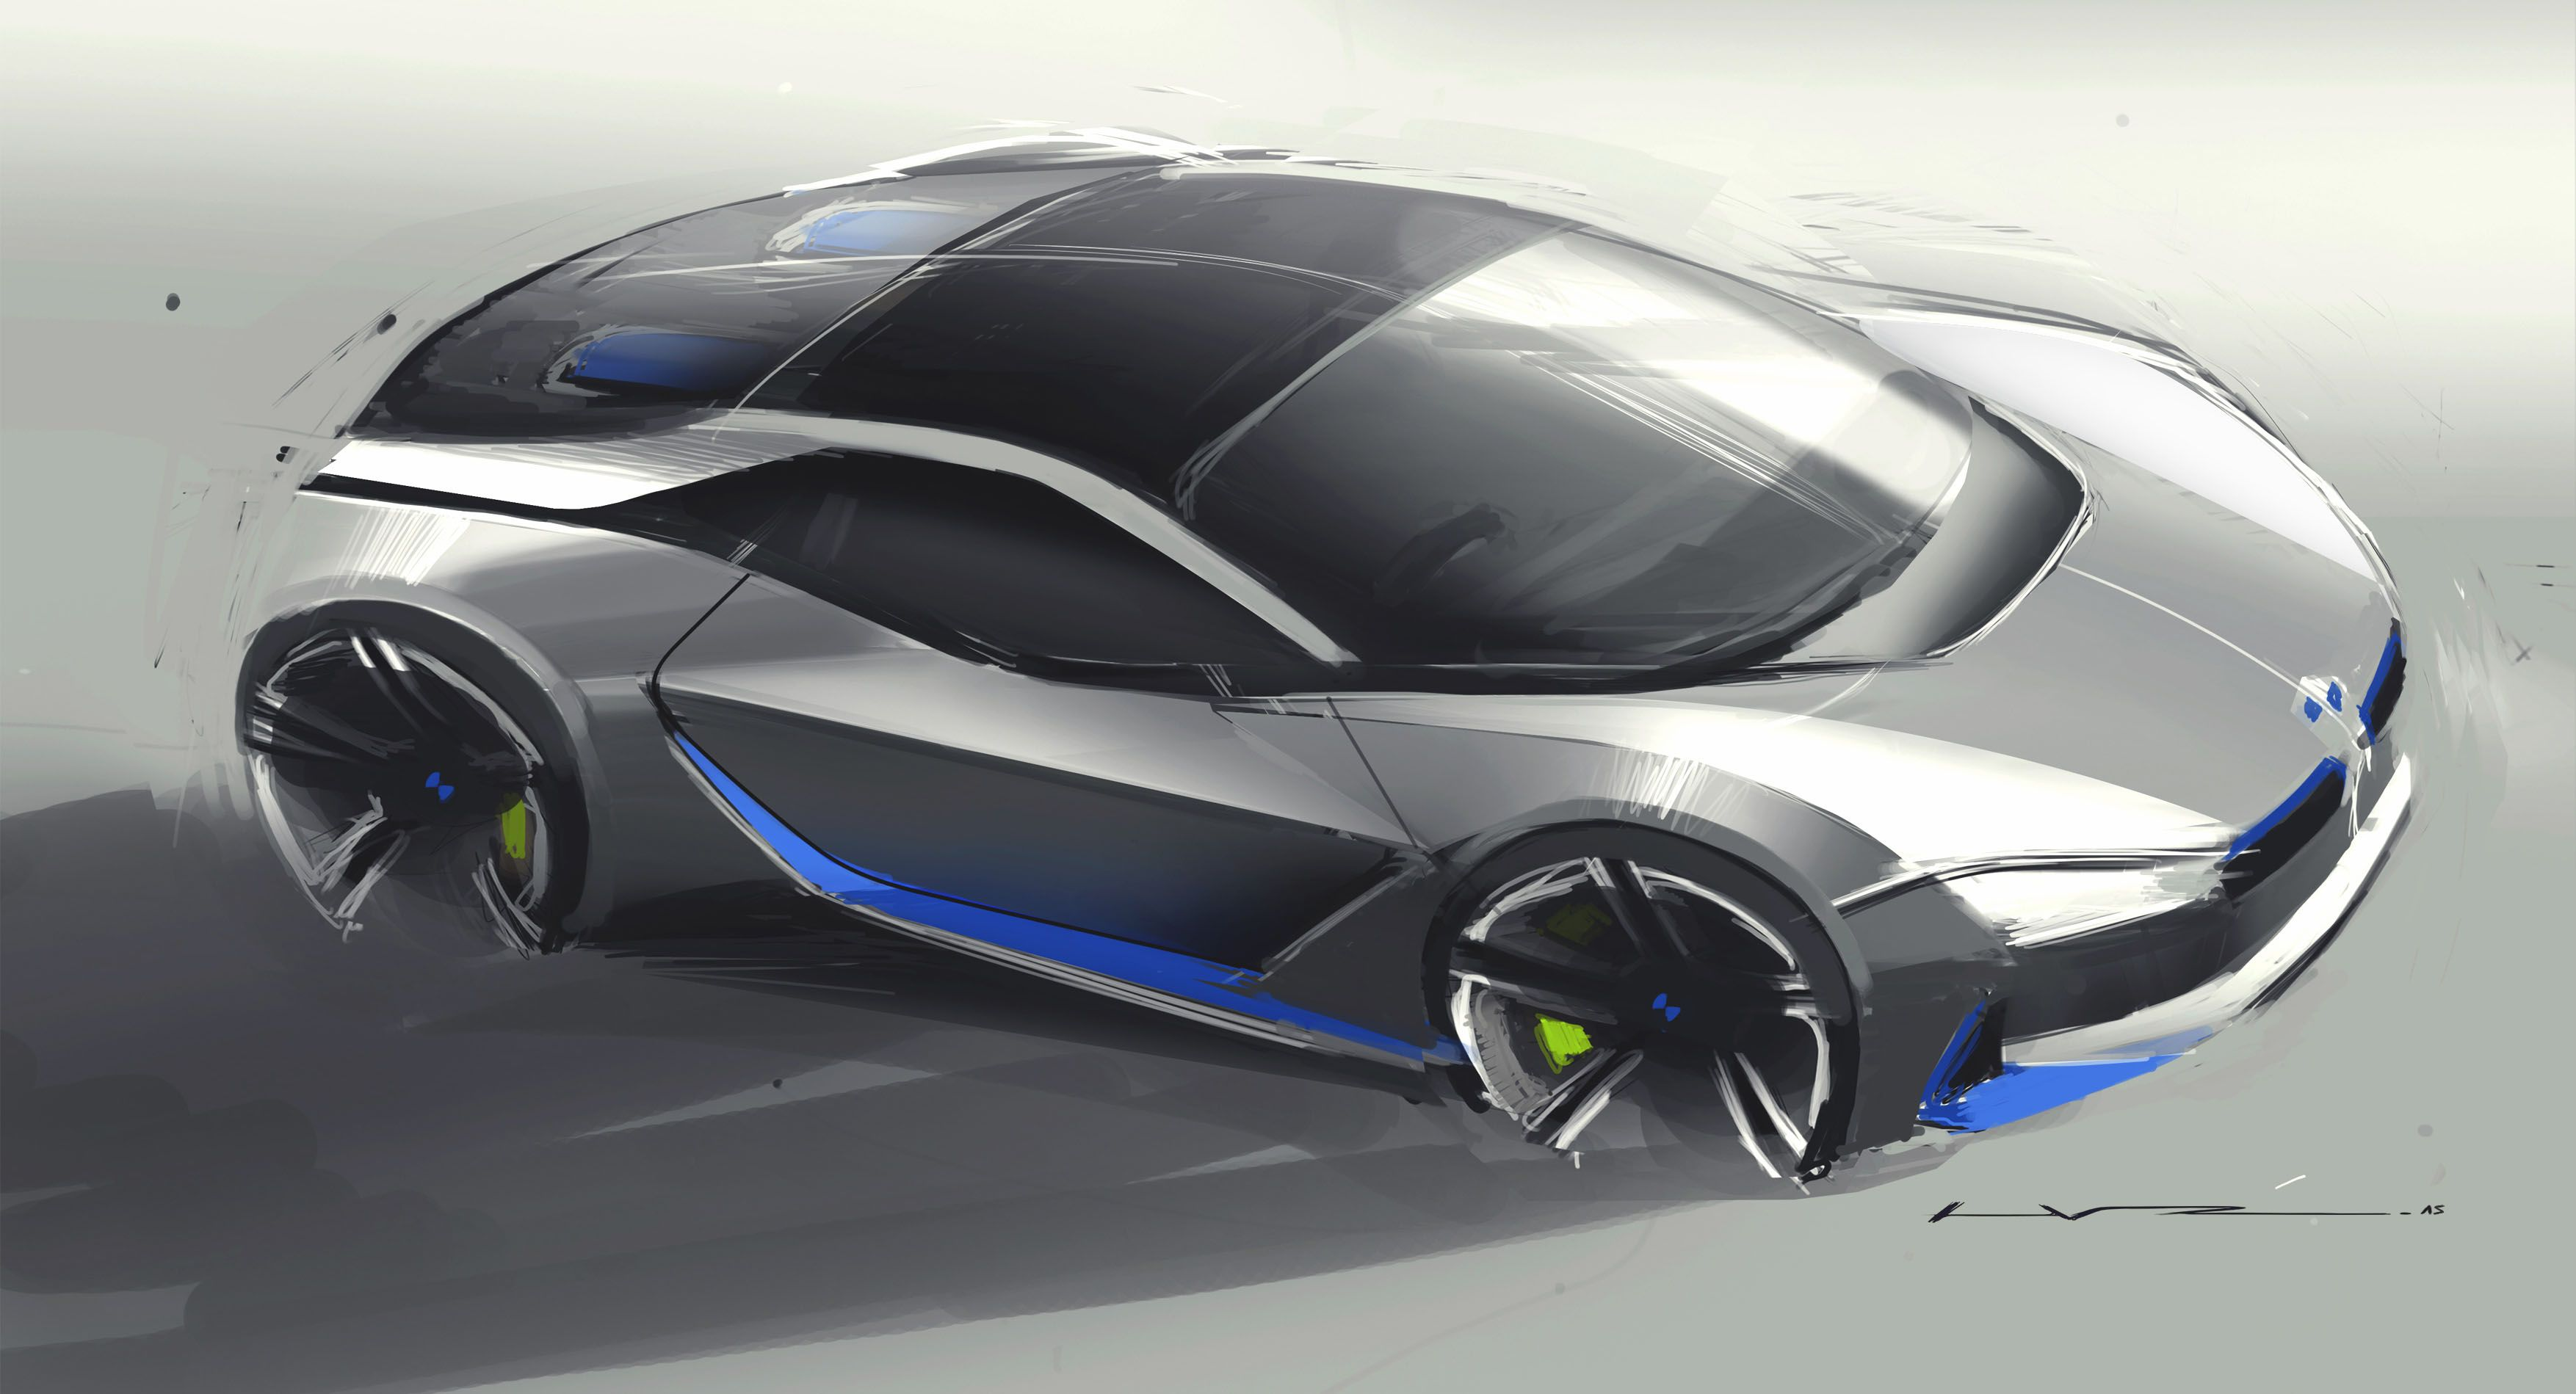 Bmw I Sketch Iddesign Bmwidesign Bmw Cardesign Concept